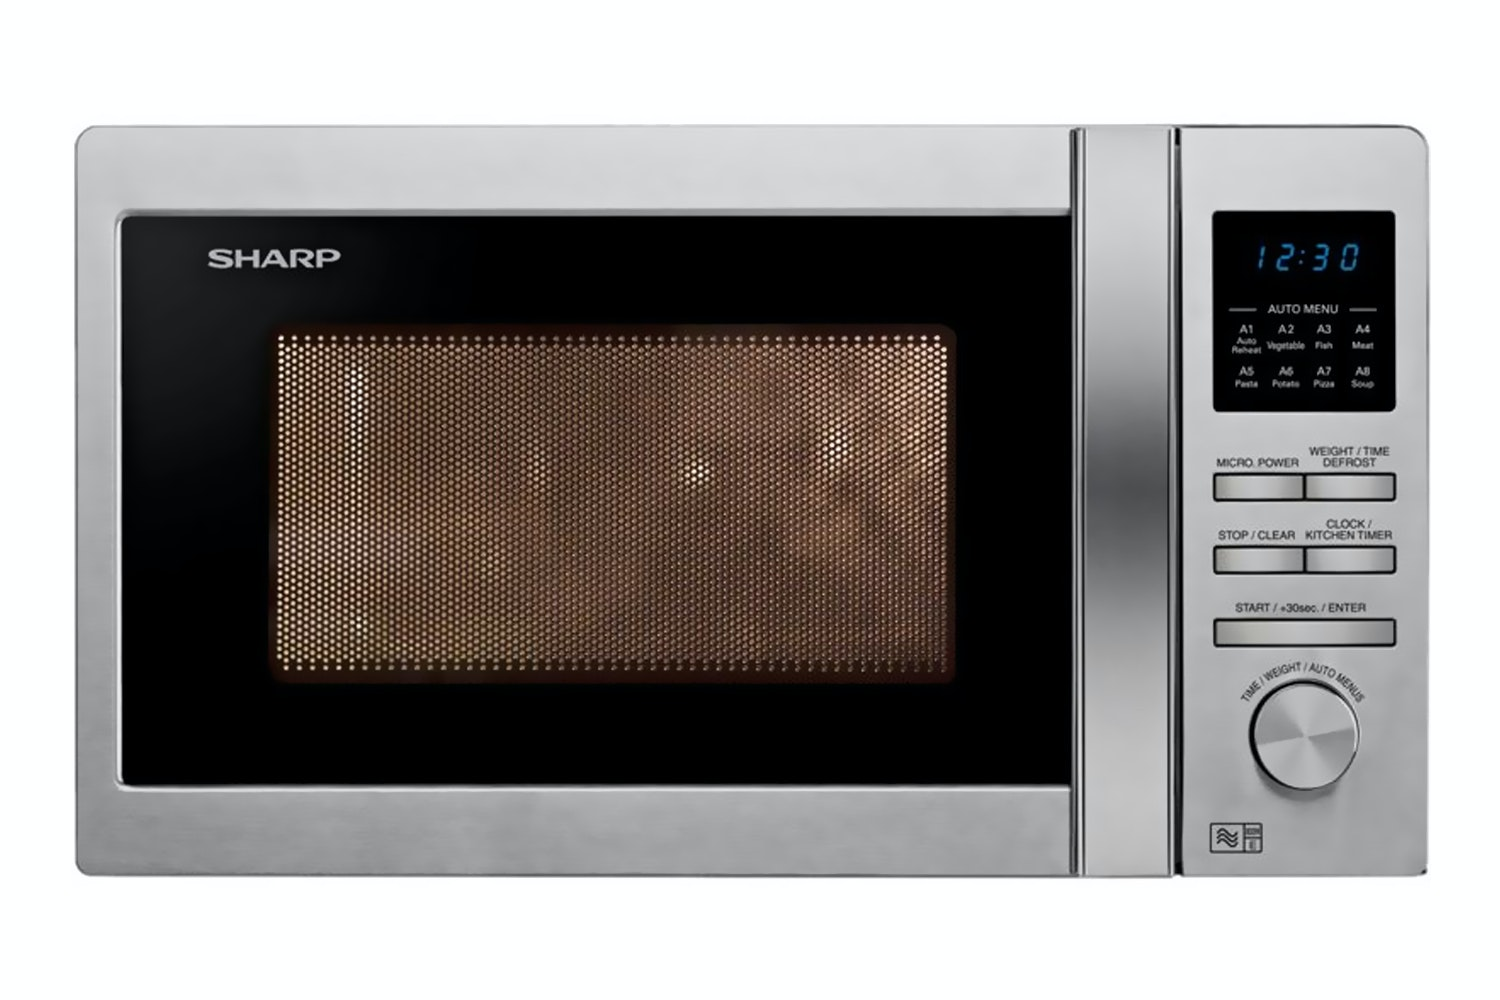 Sharp 25L 900W Microwave | R322STM | Stainless Steel